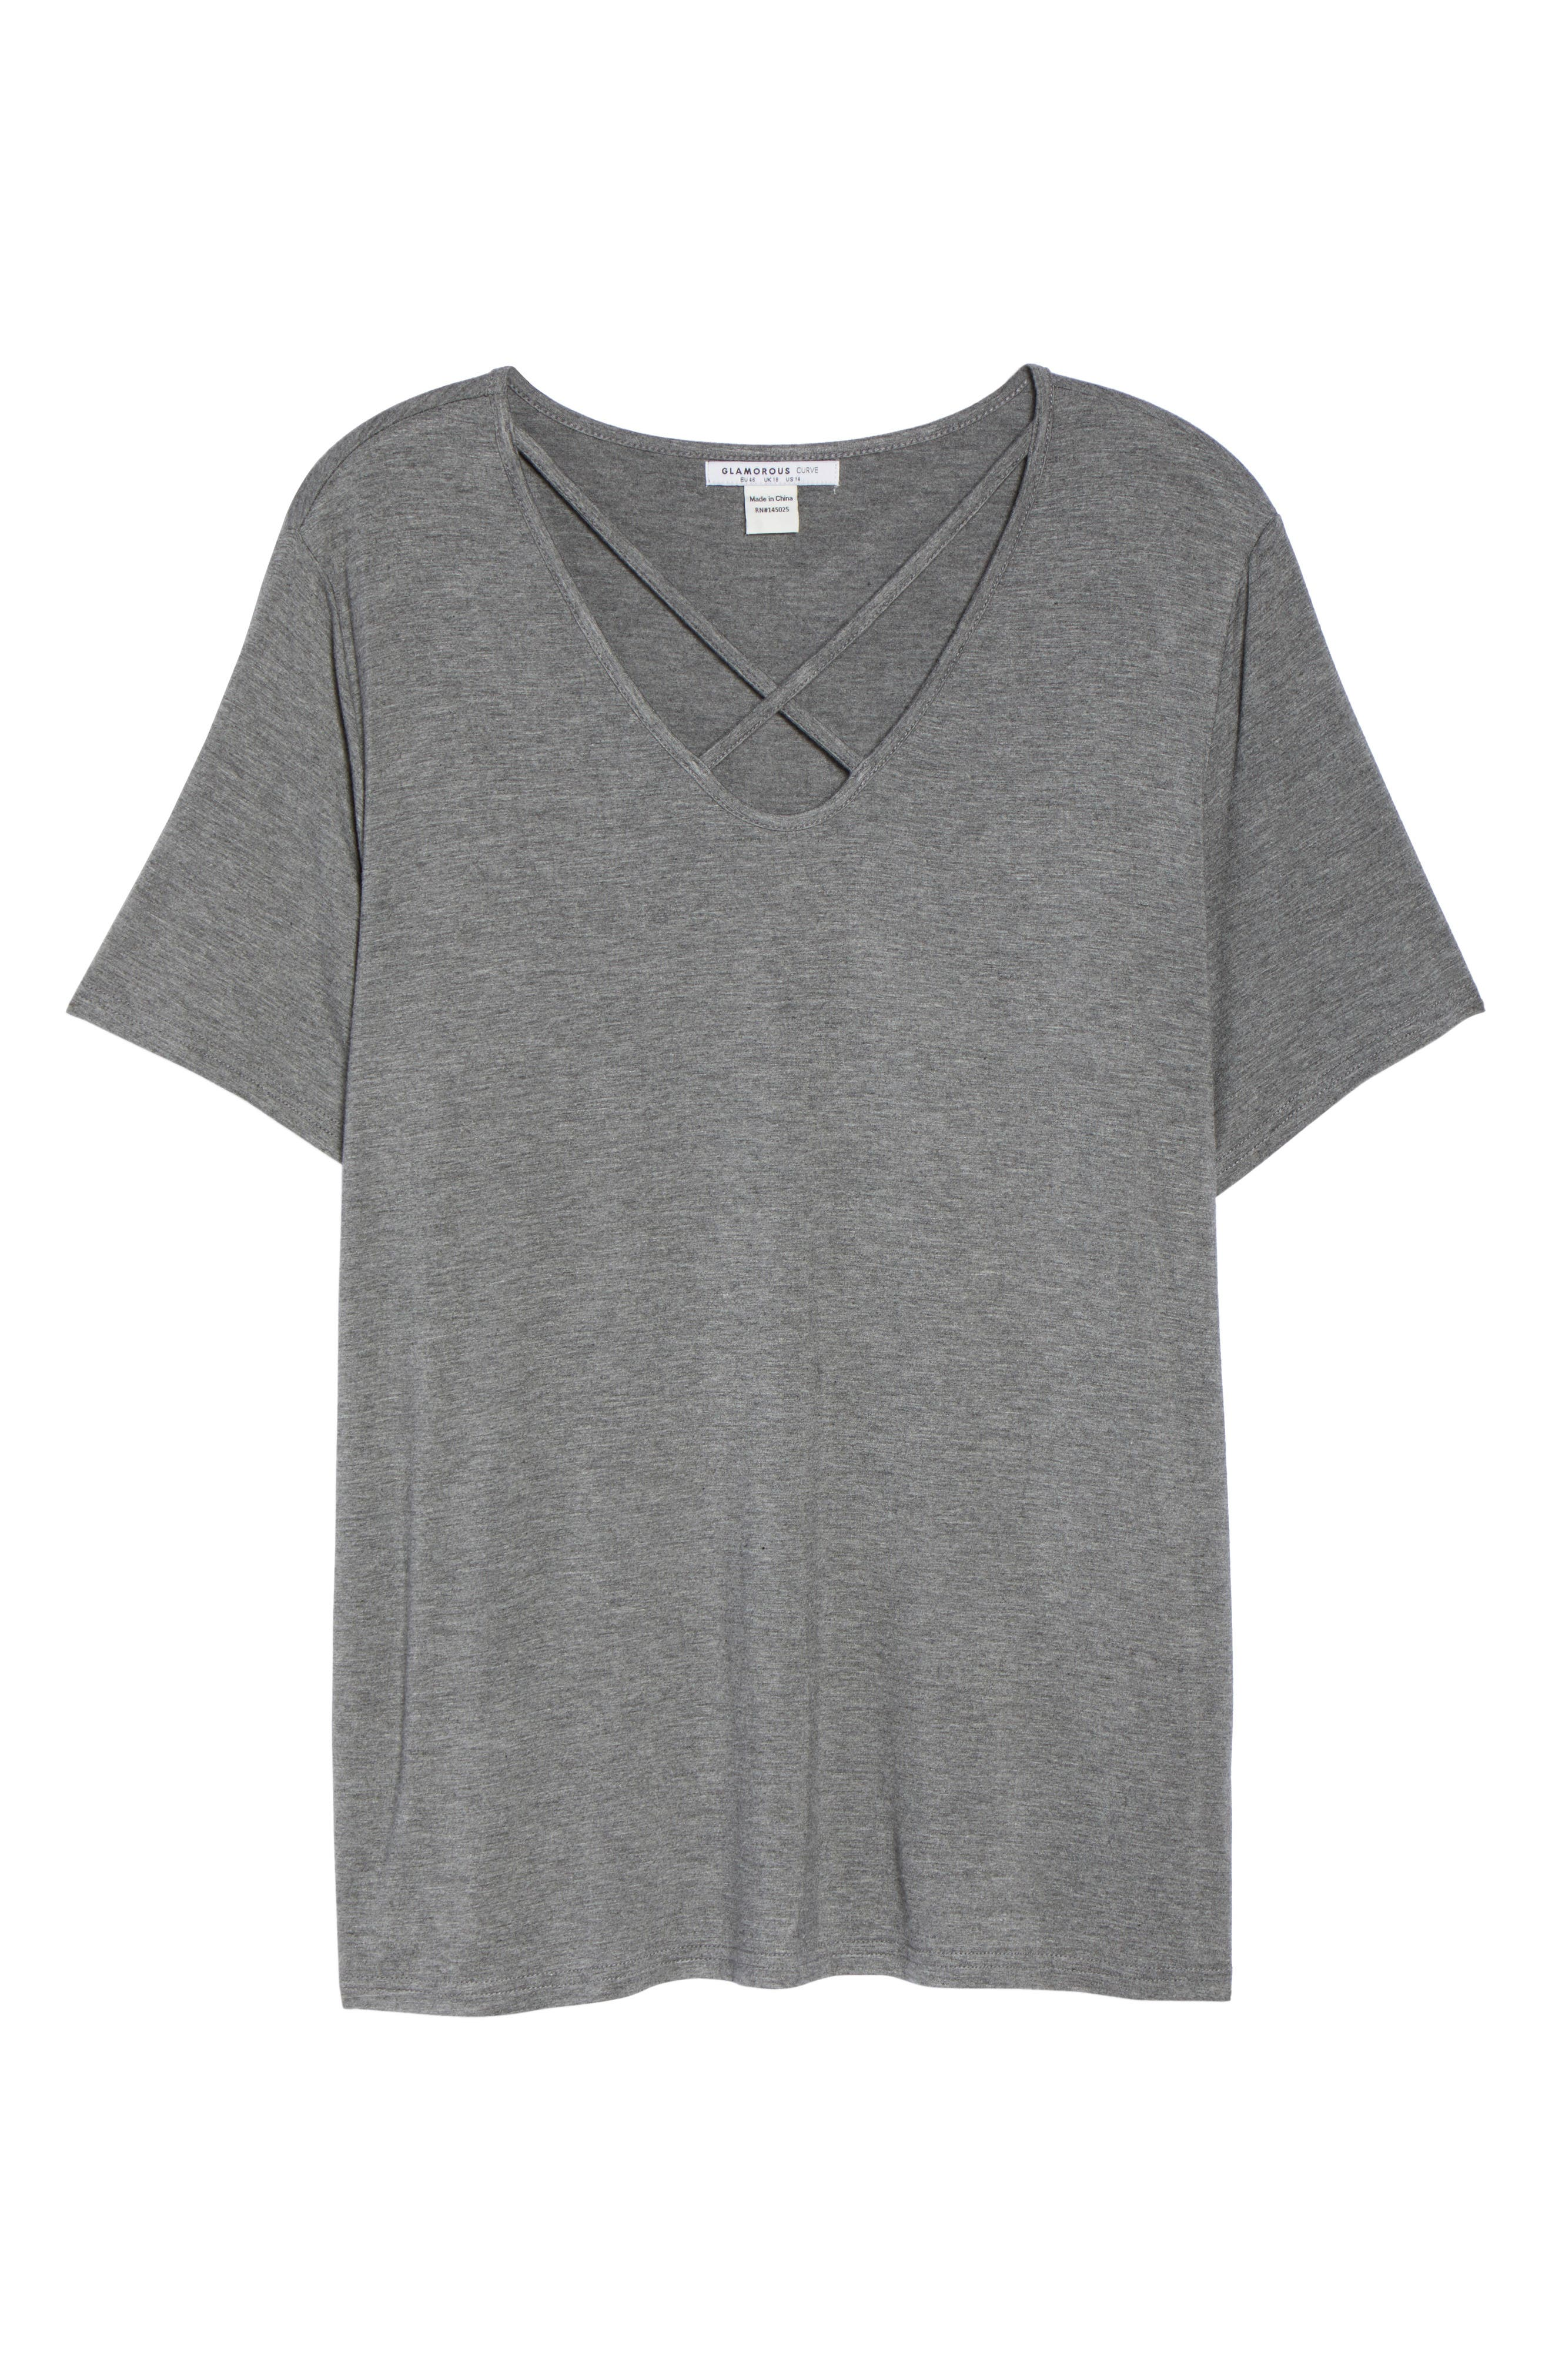 X-Neck Tee,                             Alternate thumbnail 6, color,                             Charcoal